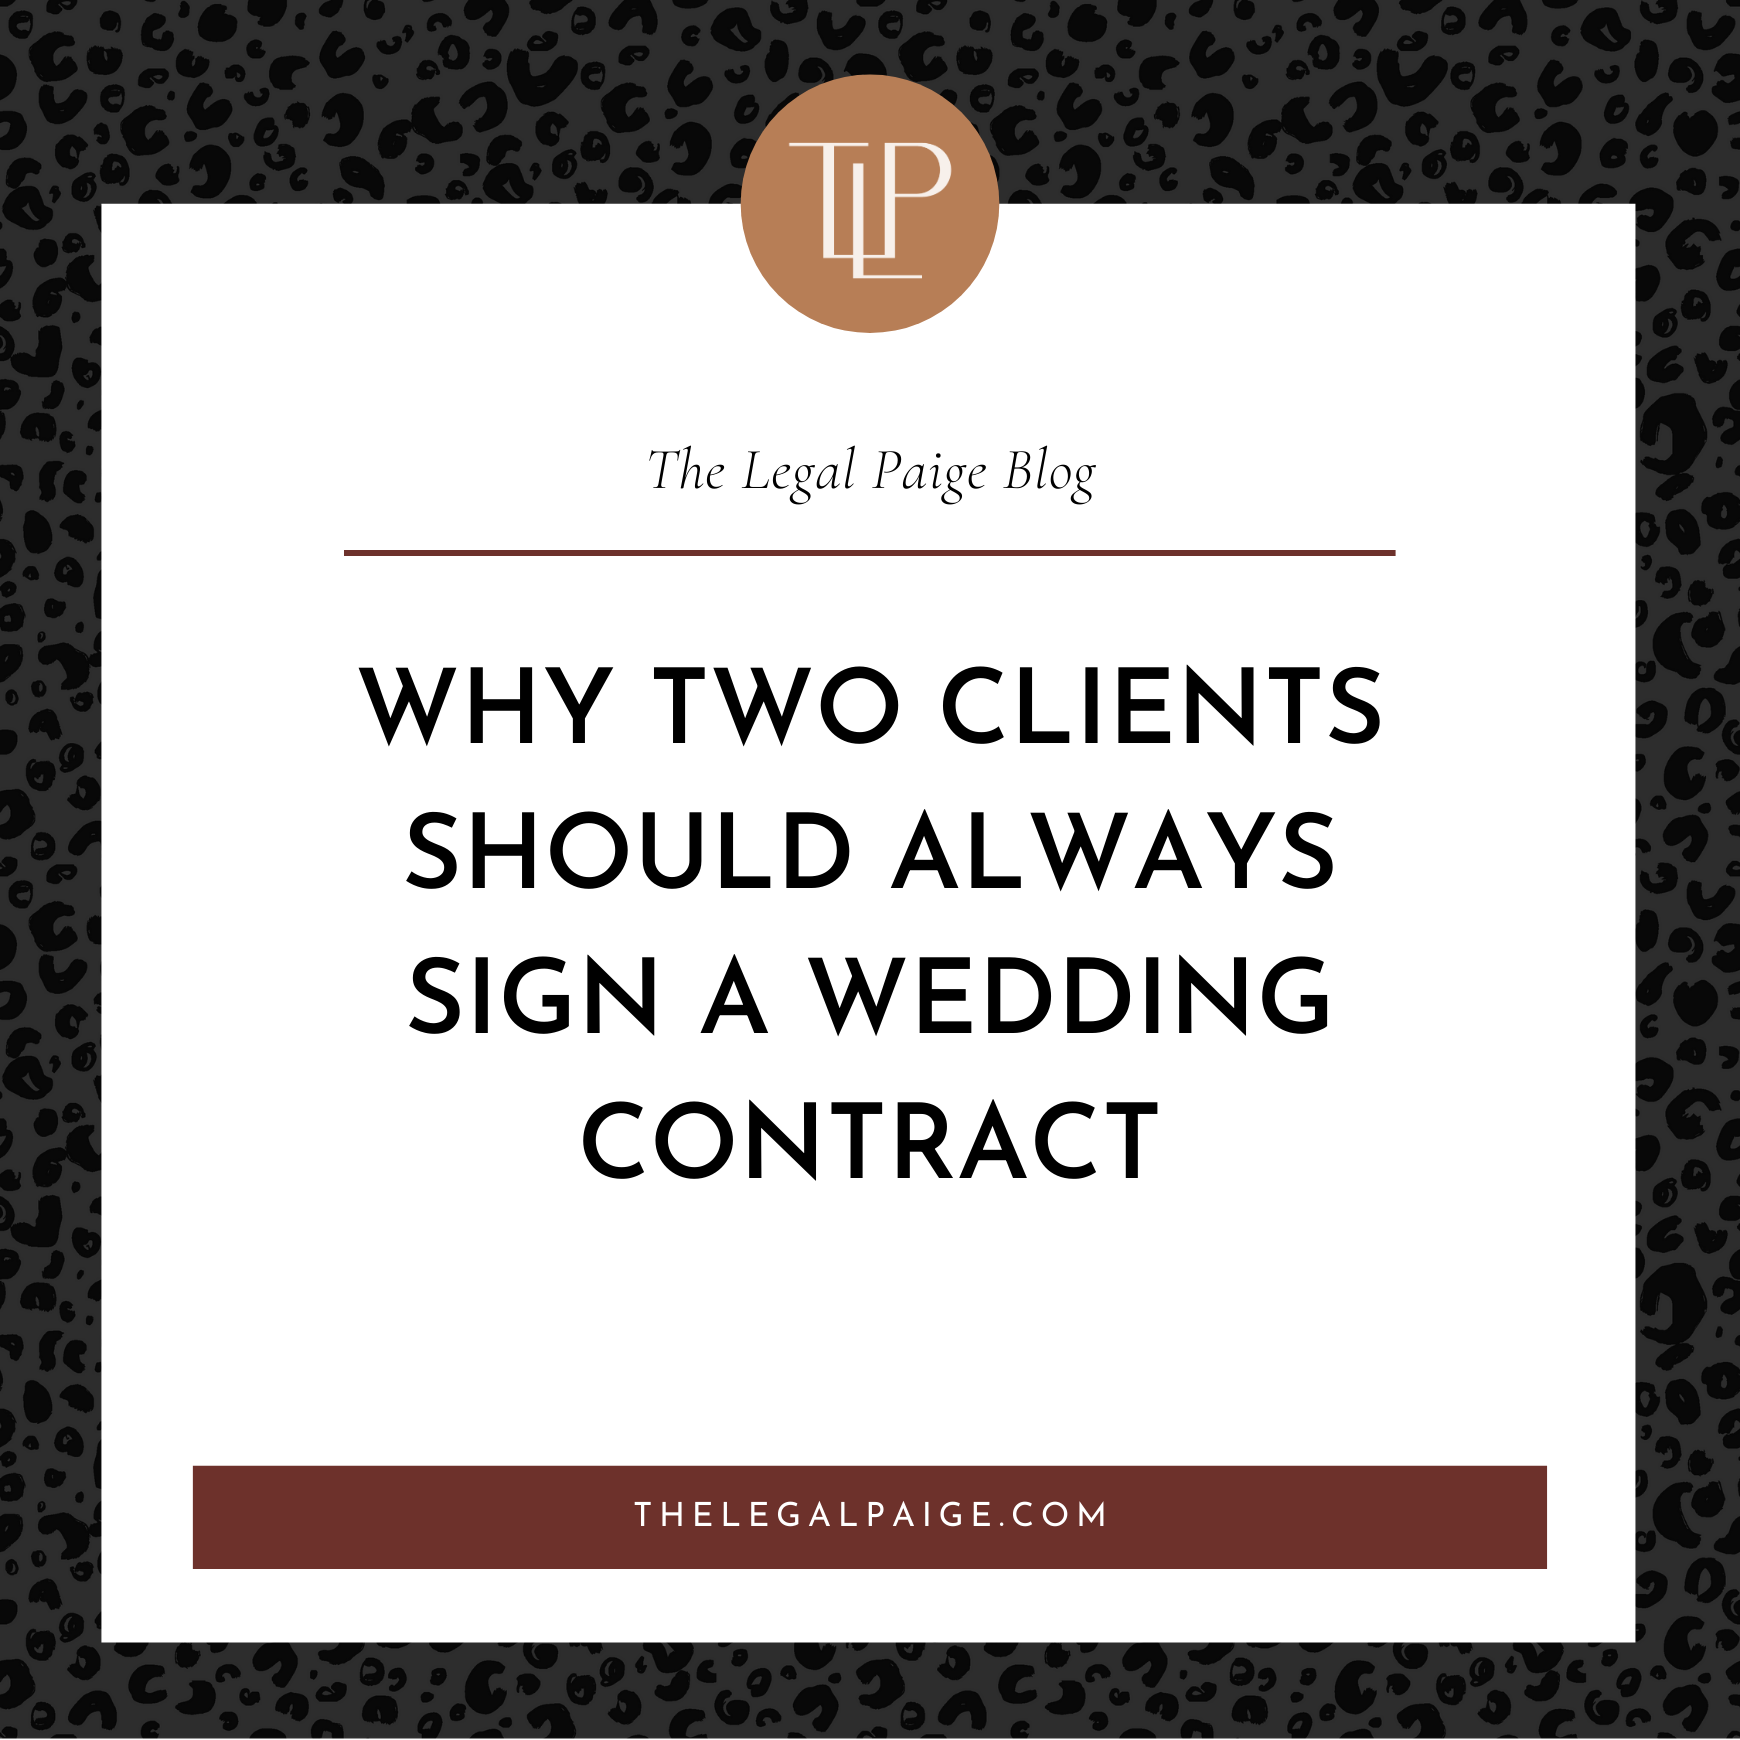 Why TWO CLIENTS Should Always Sign A Wedding Contract